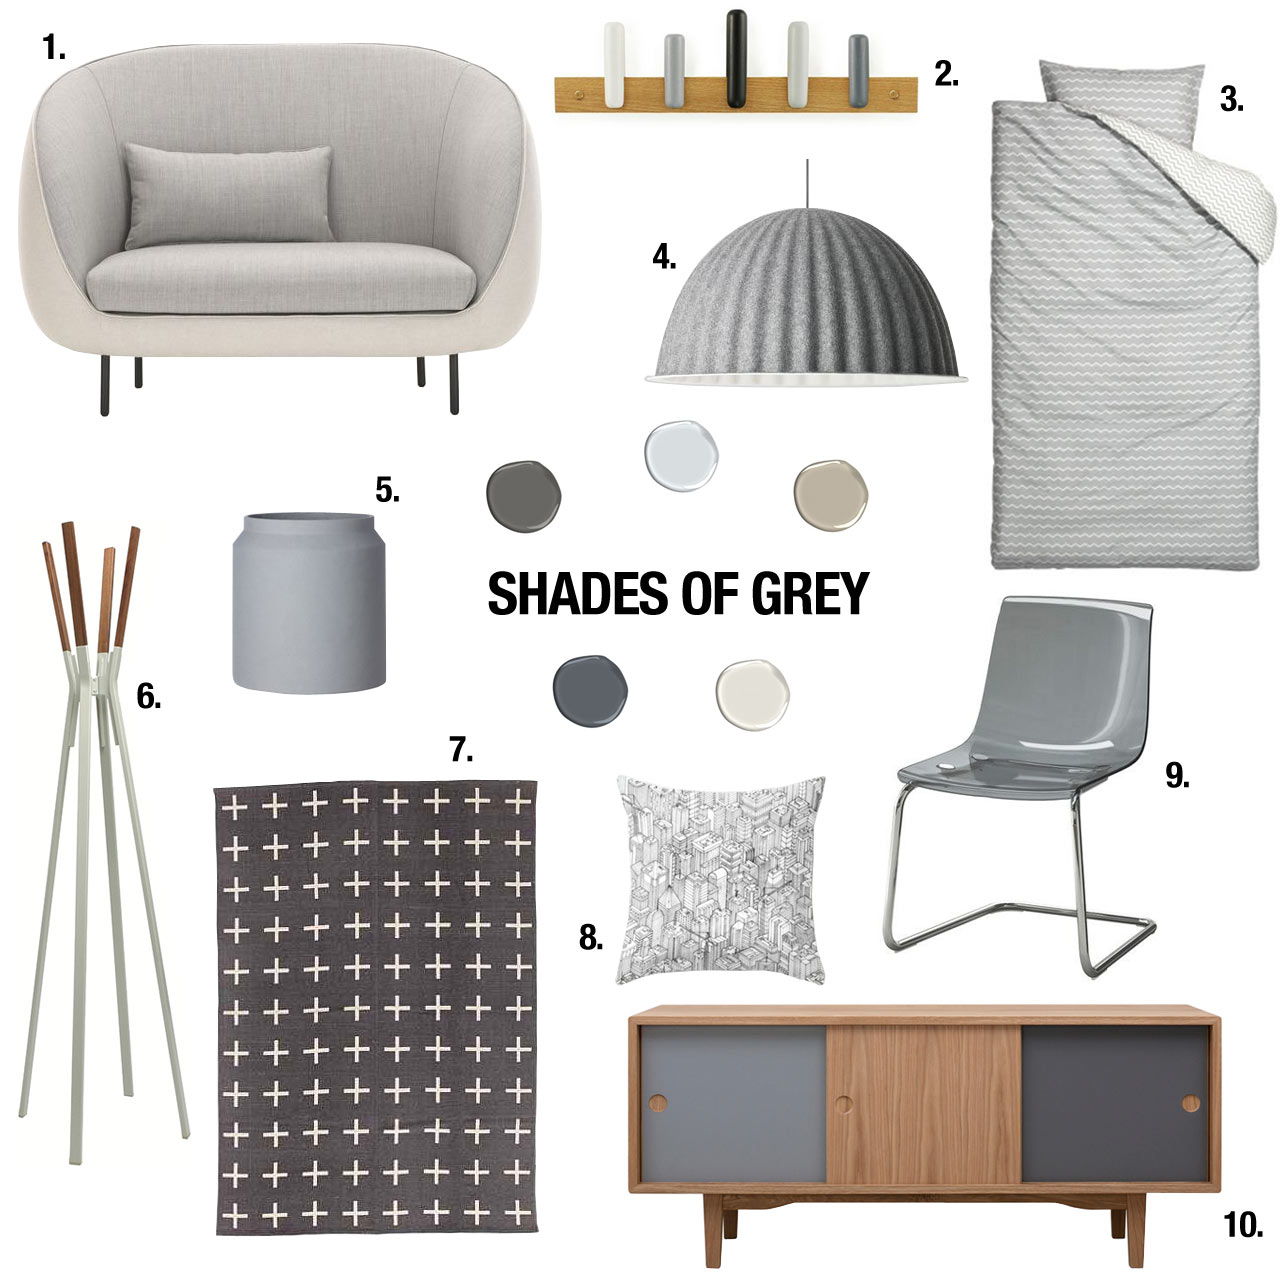 50 Shades of Grey, OK 10, for Your Home - Design Milk